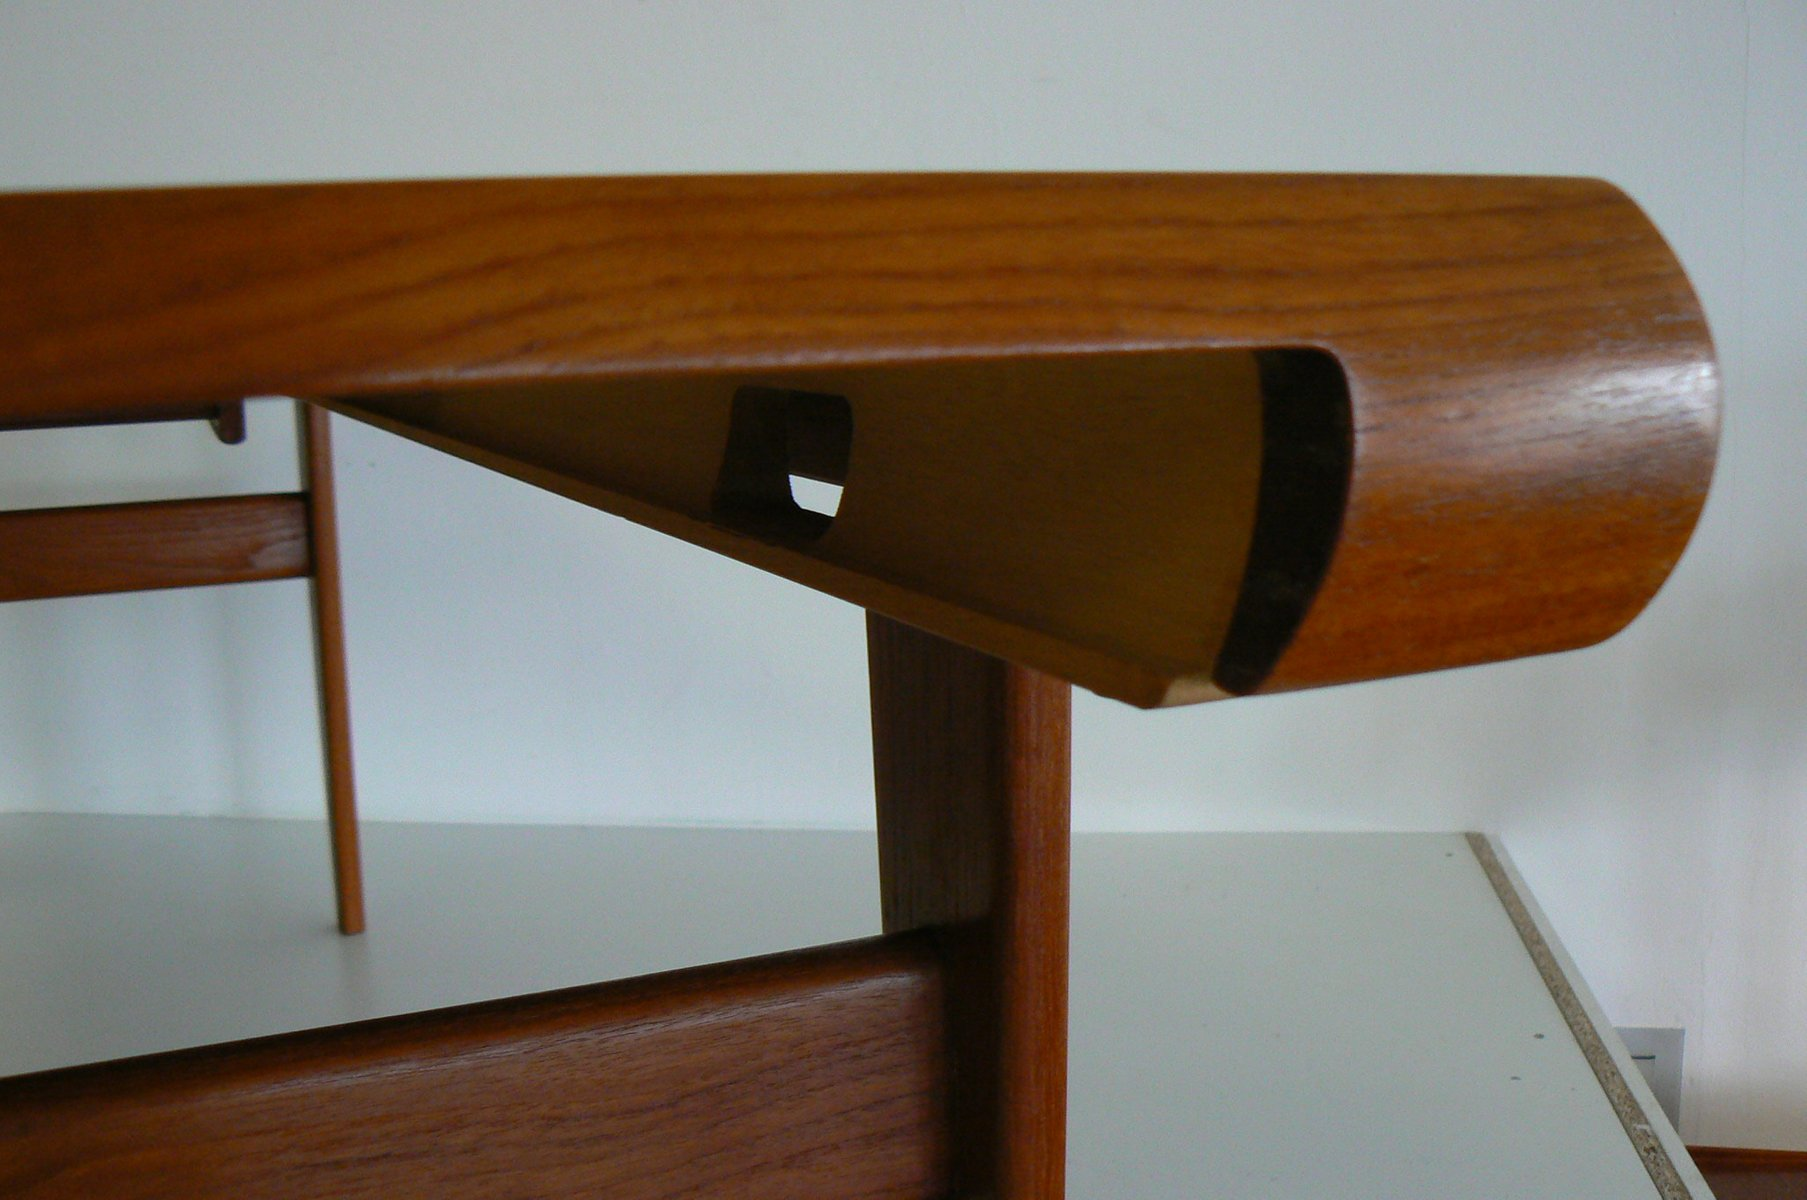 Danish Teak Coffee Table With Built-In Nesting Table From